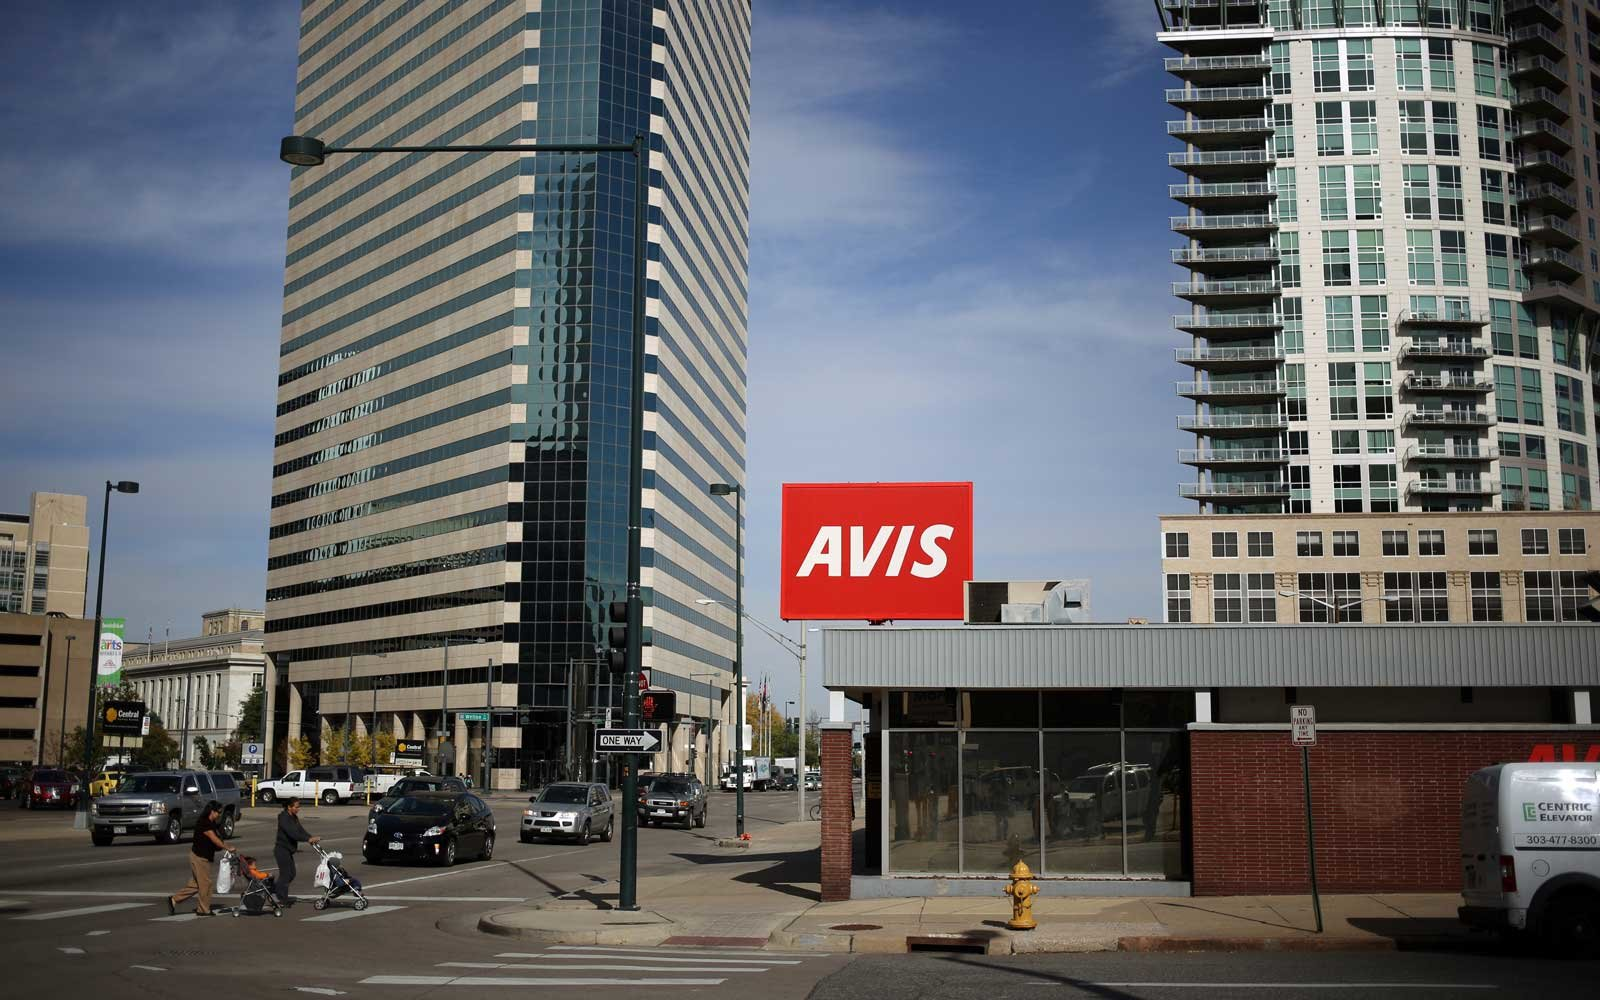 Avis Rental Car in Denver Colorado